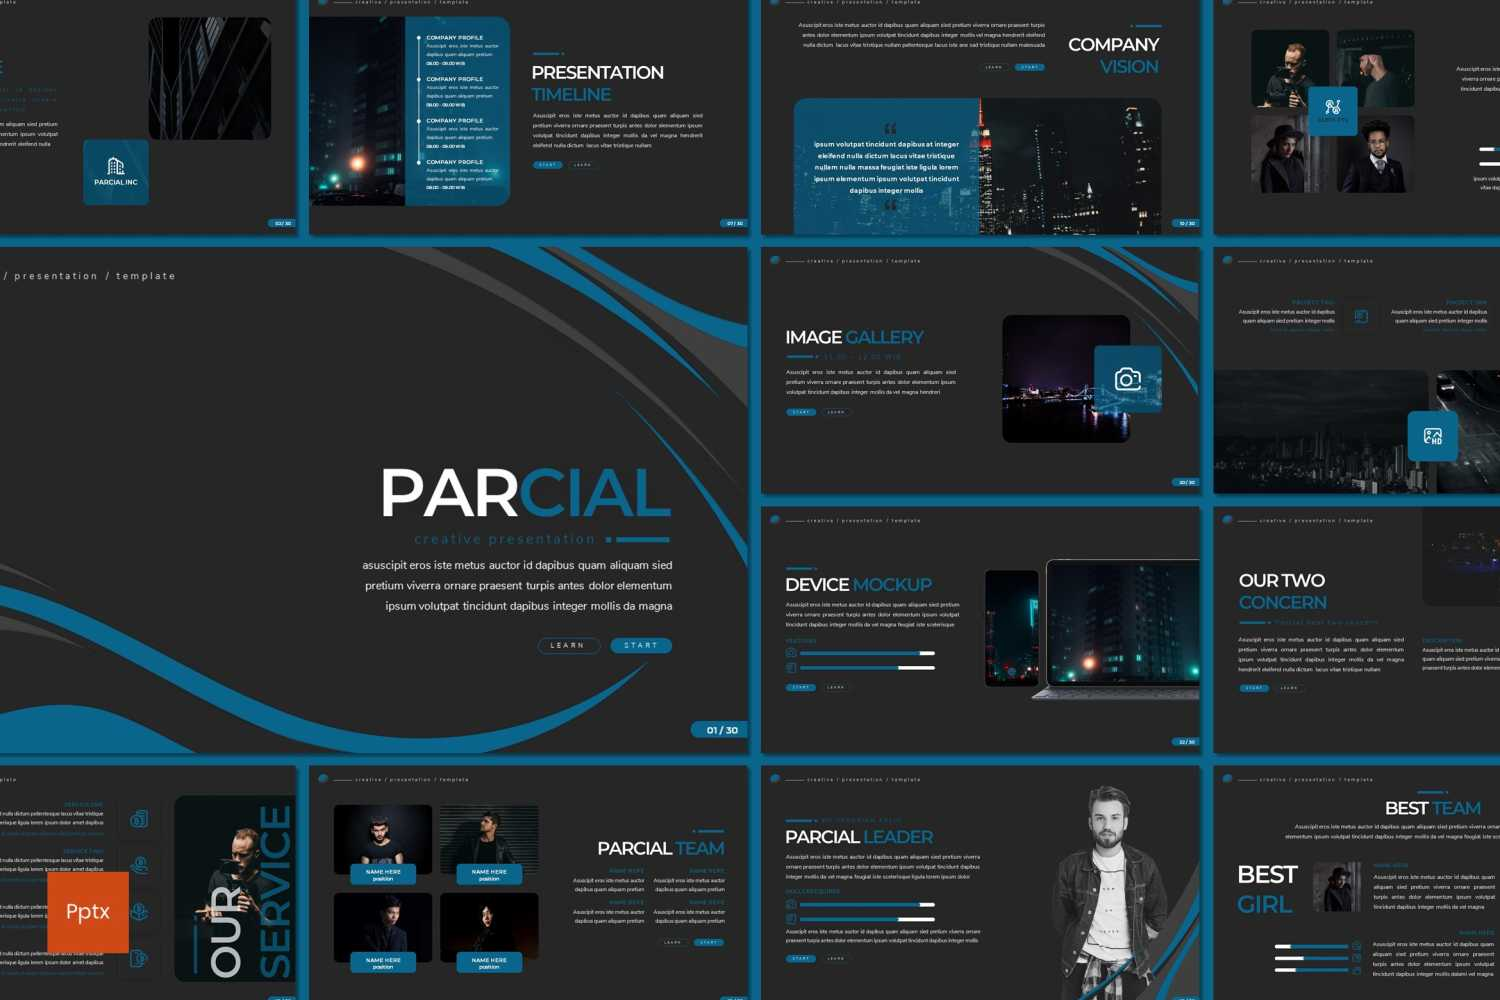 Parcial PowerPoint Template